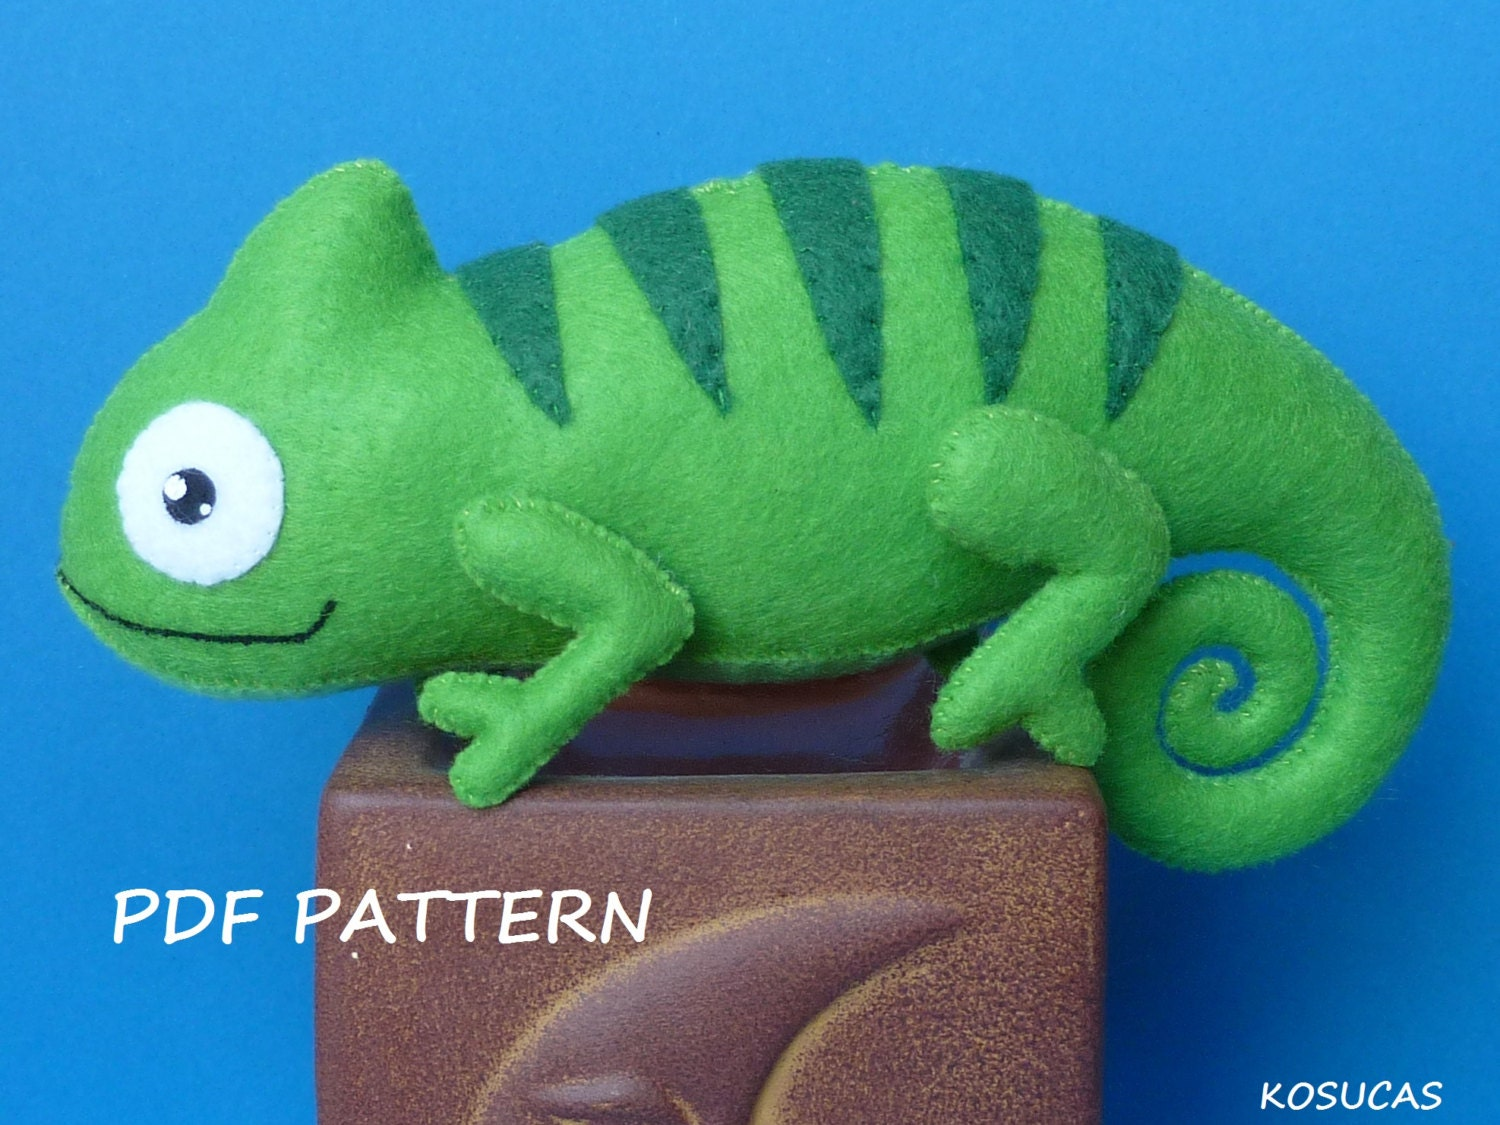 Pdf Sewing Pattern To Make A Felt Chameleon From Kosucas